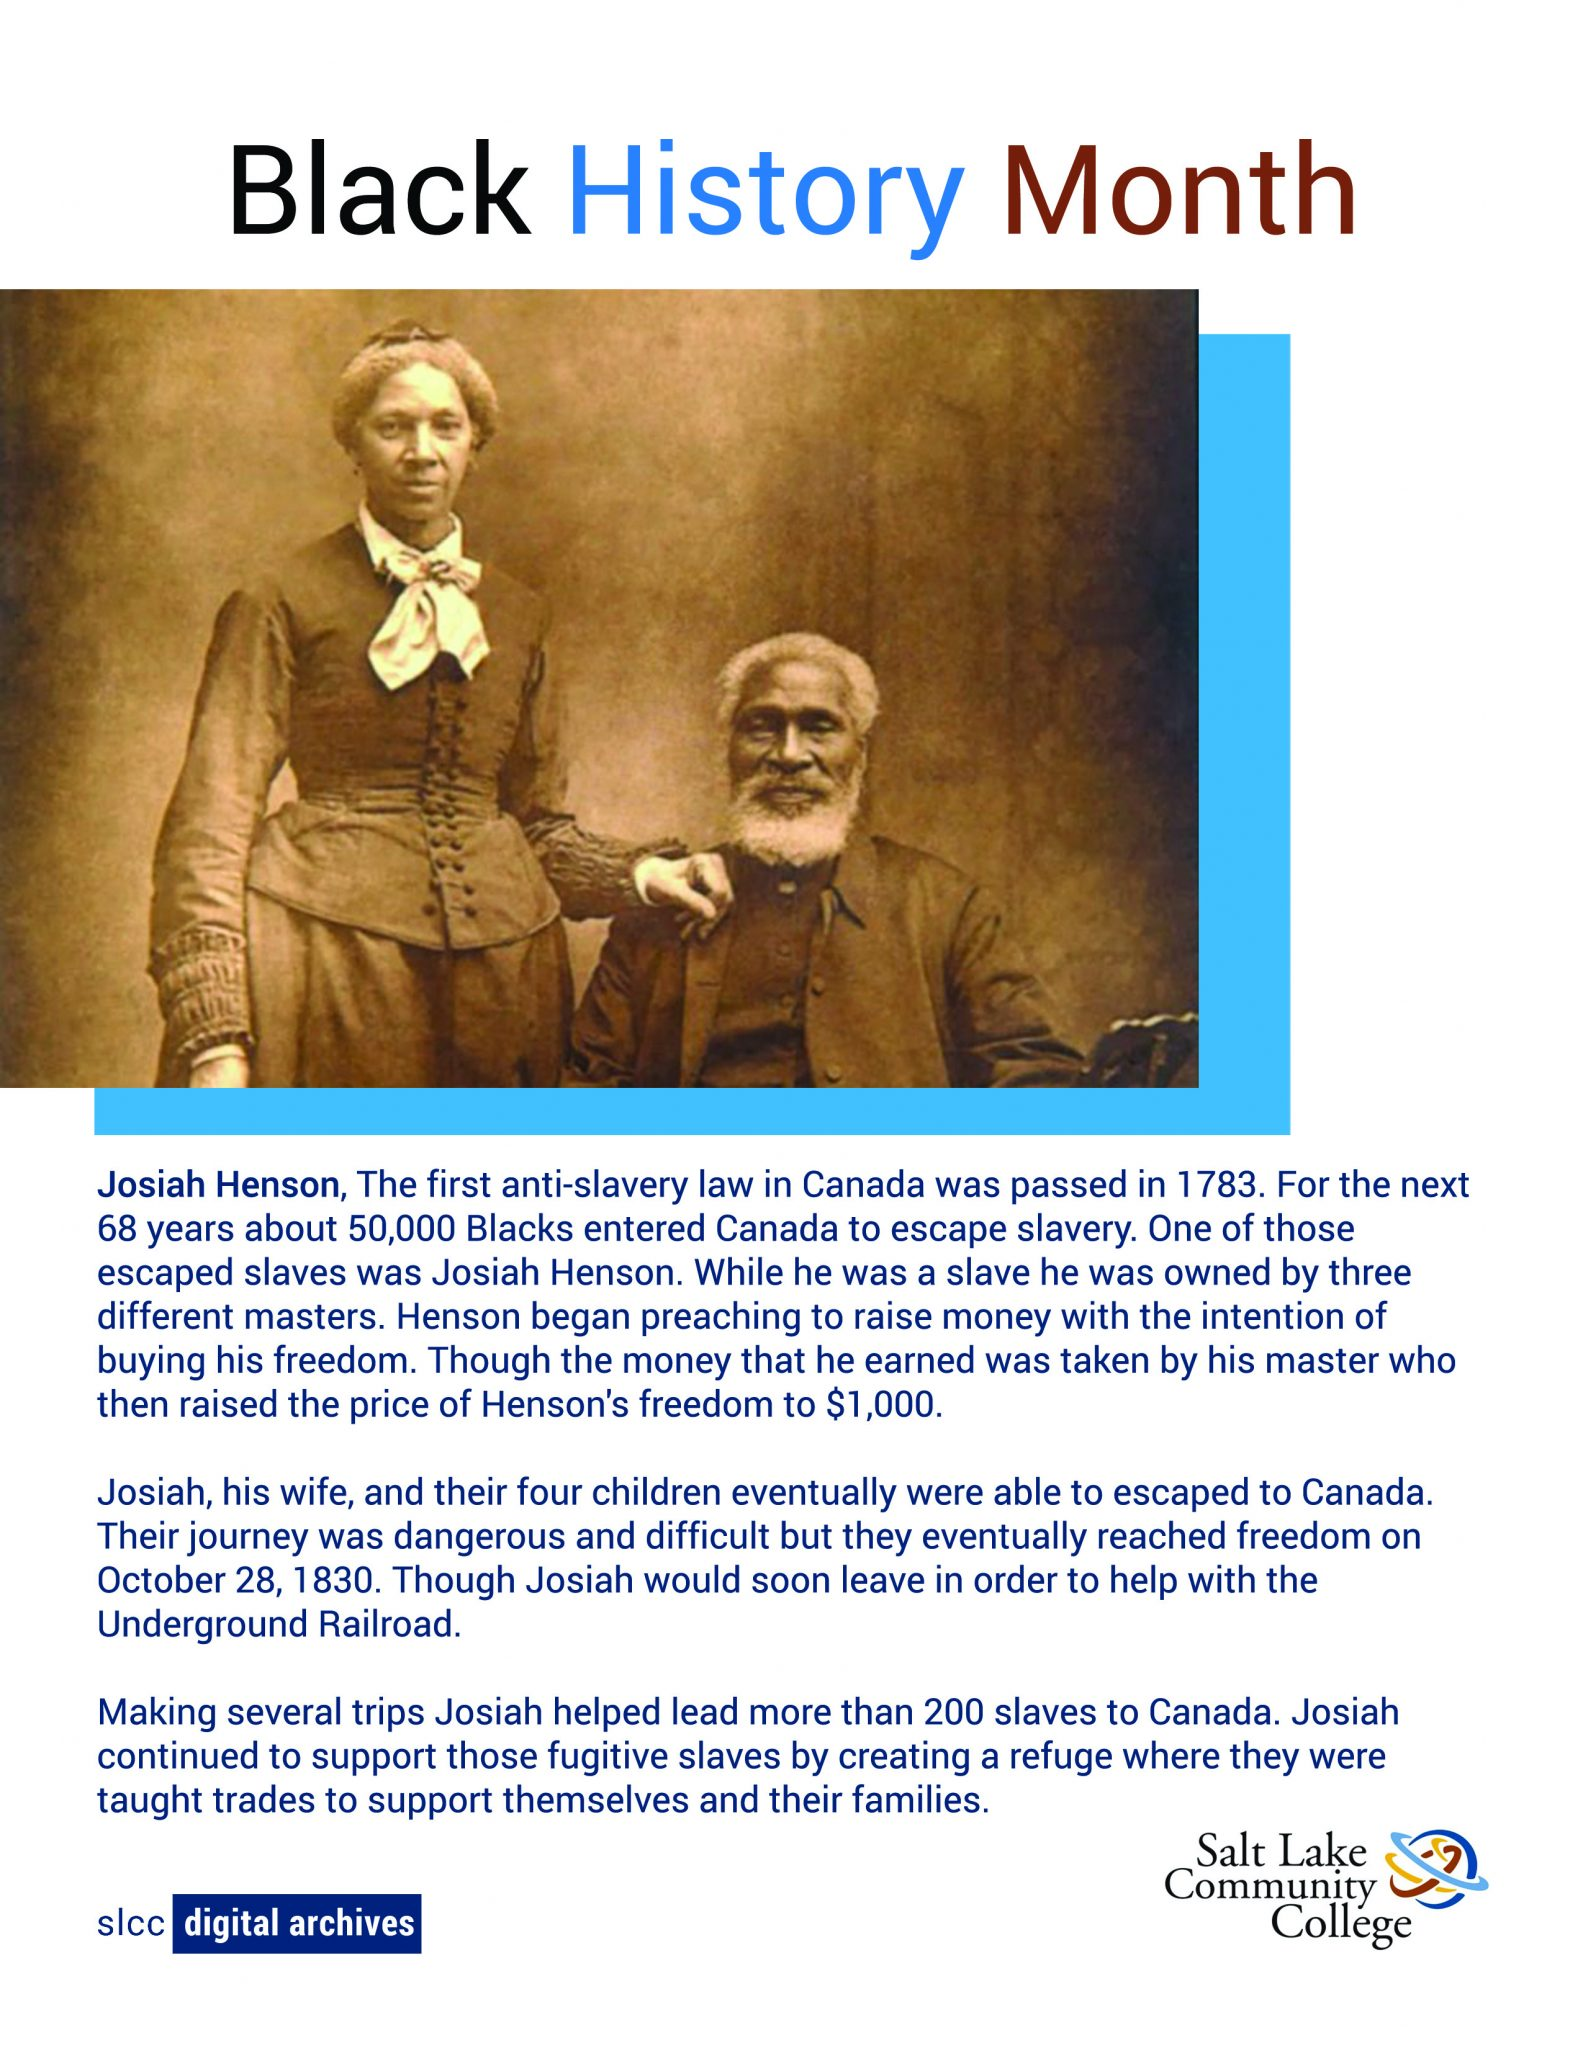 photo of Josiah Henson a man who escaped slavery with his wife and children and helped others do the same.